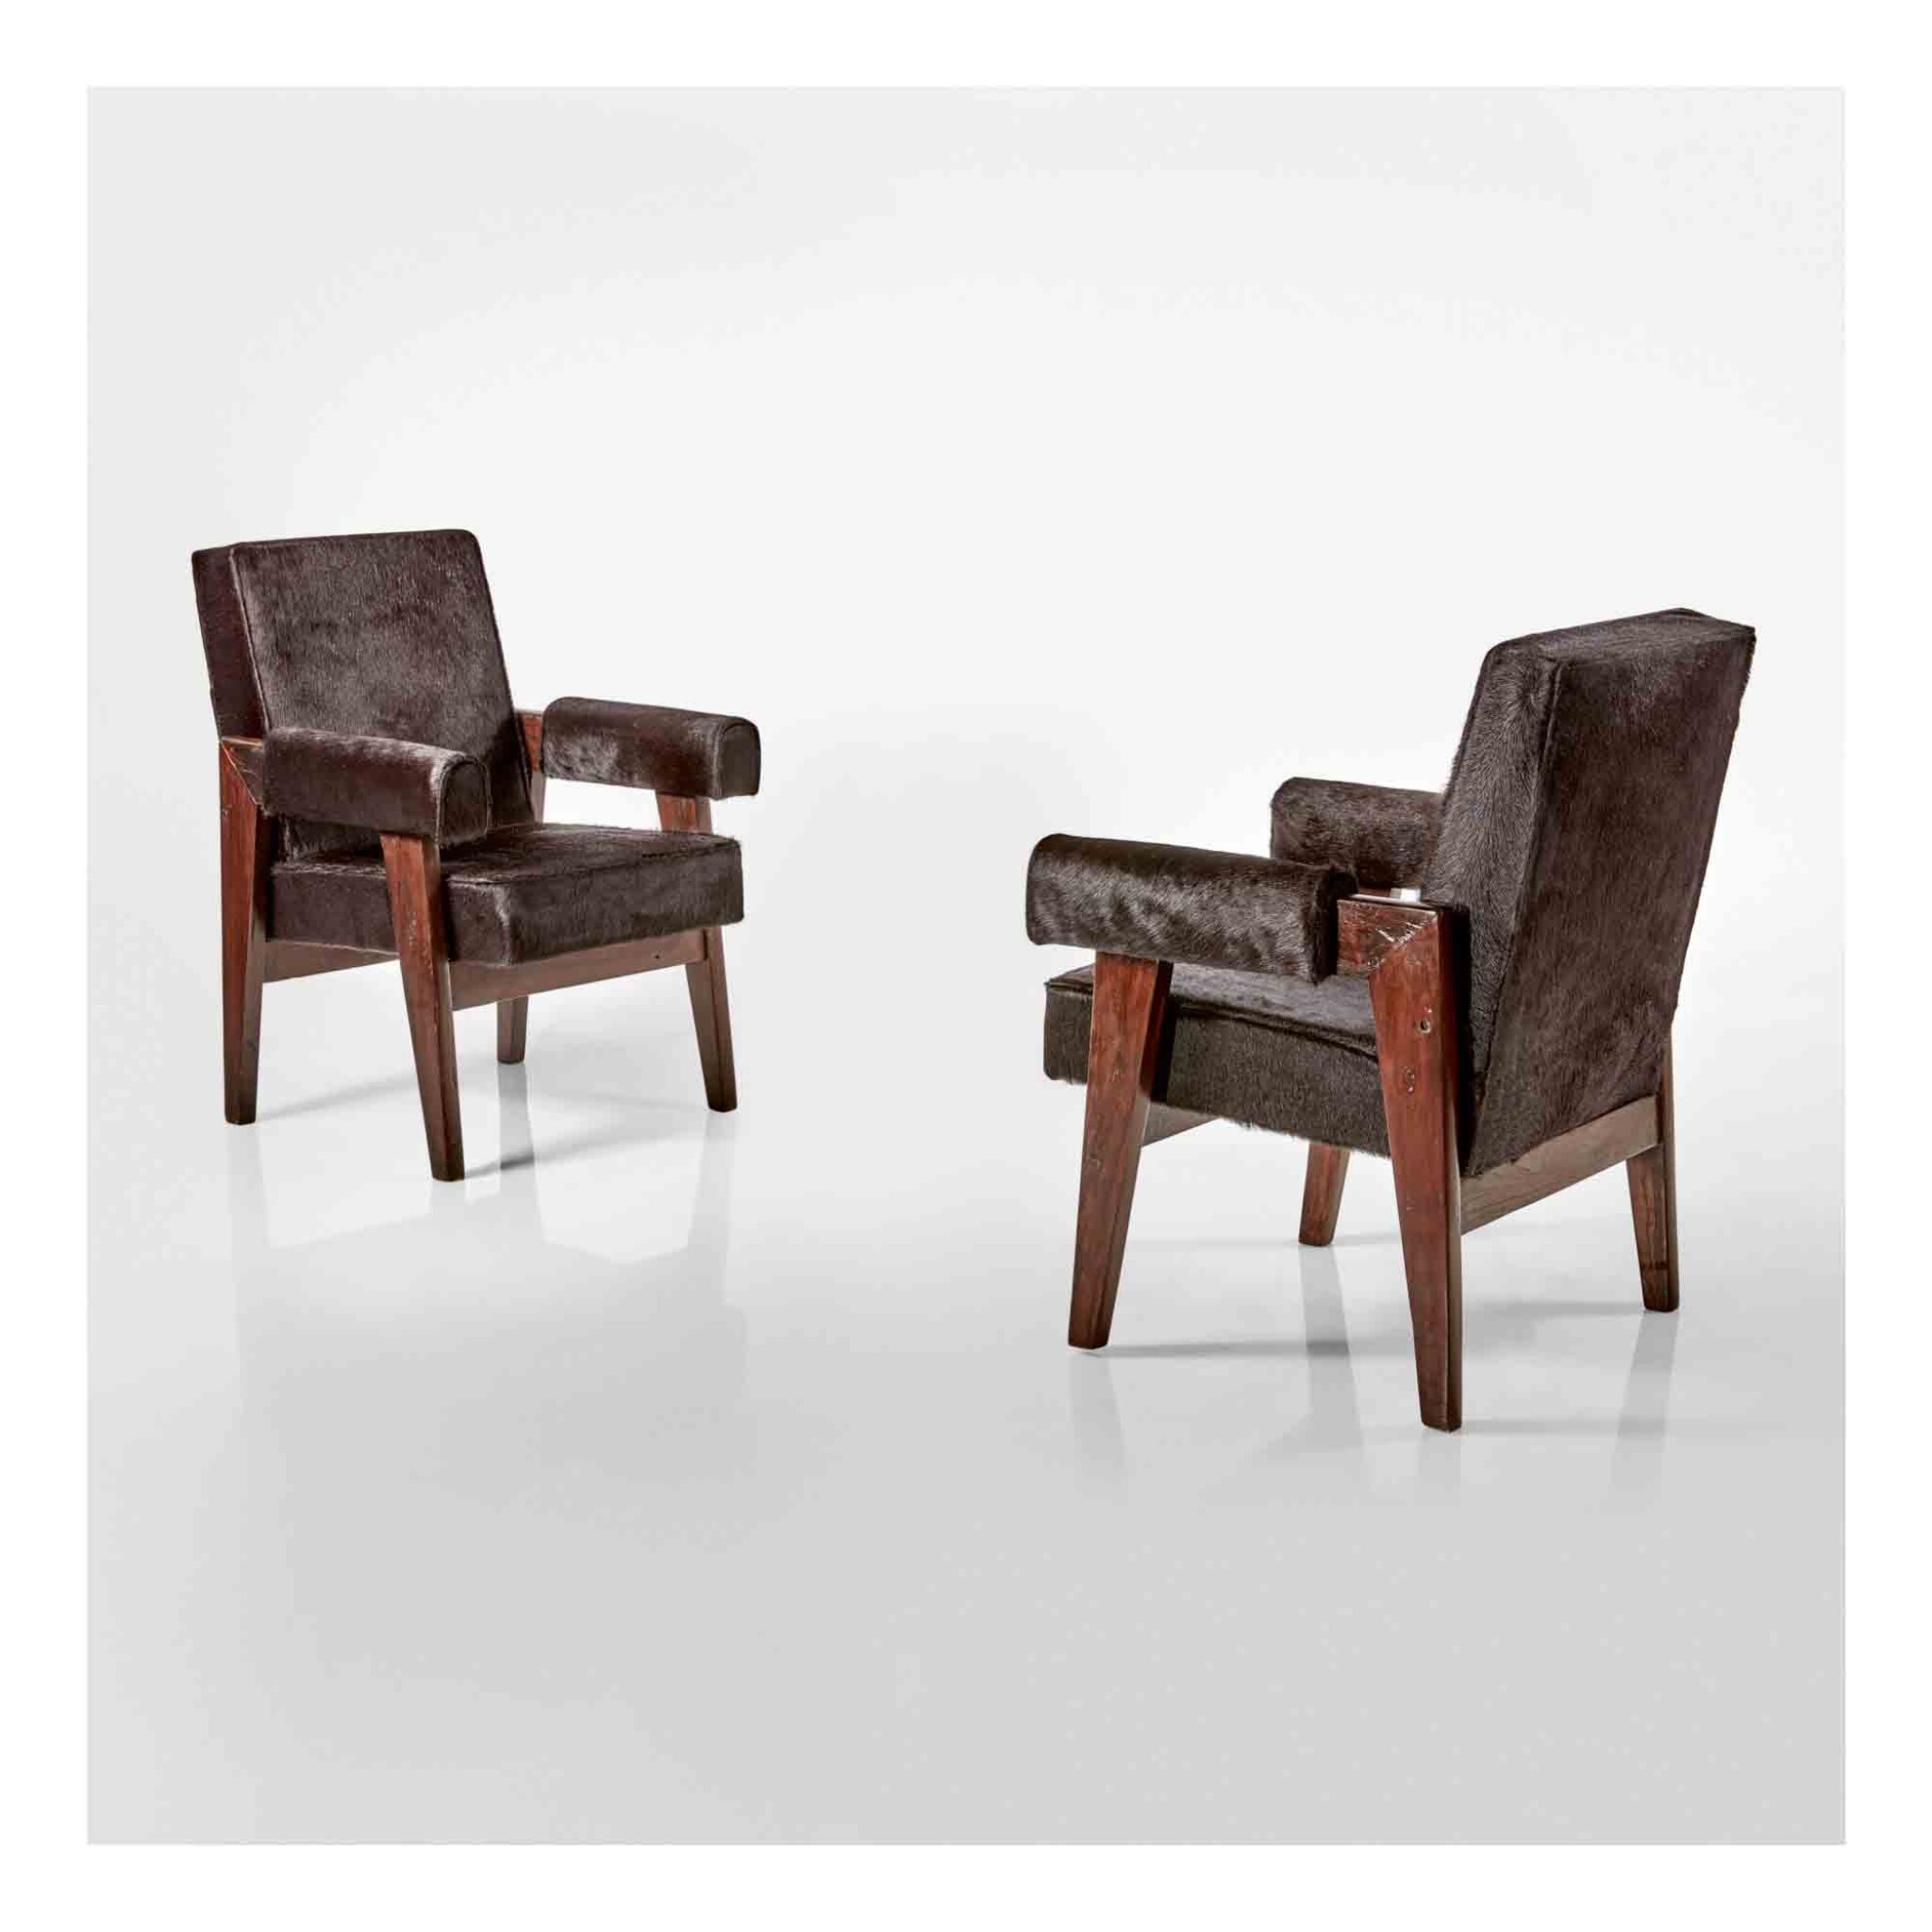 """View 1 of Lot 357. Pair of """"Advocate"""" Armchairs for the High Court, Chandigarh, India."""